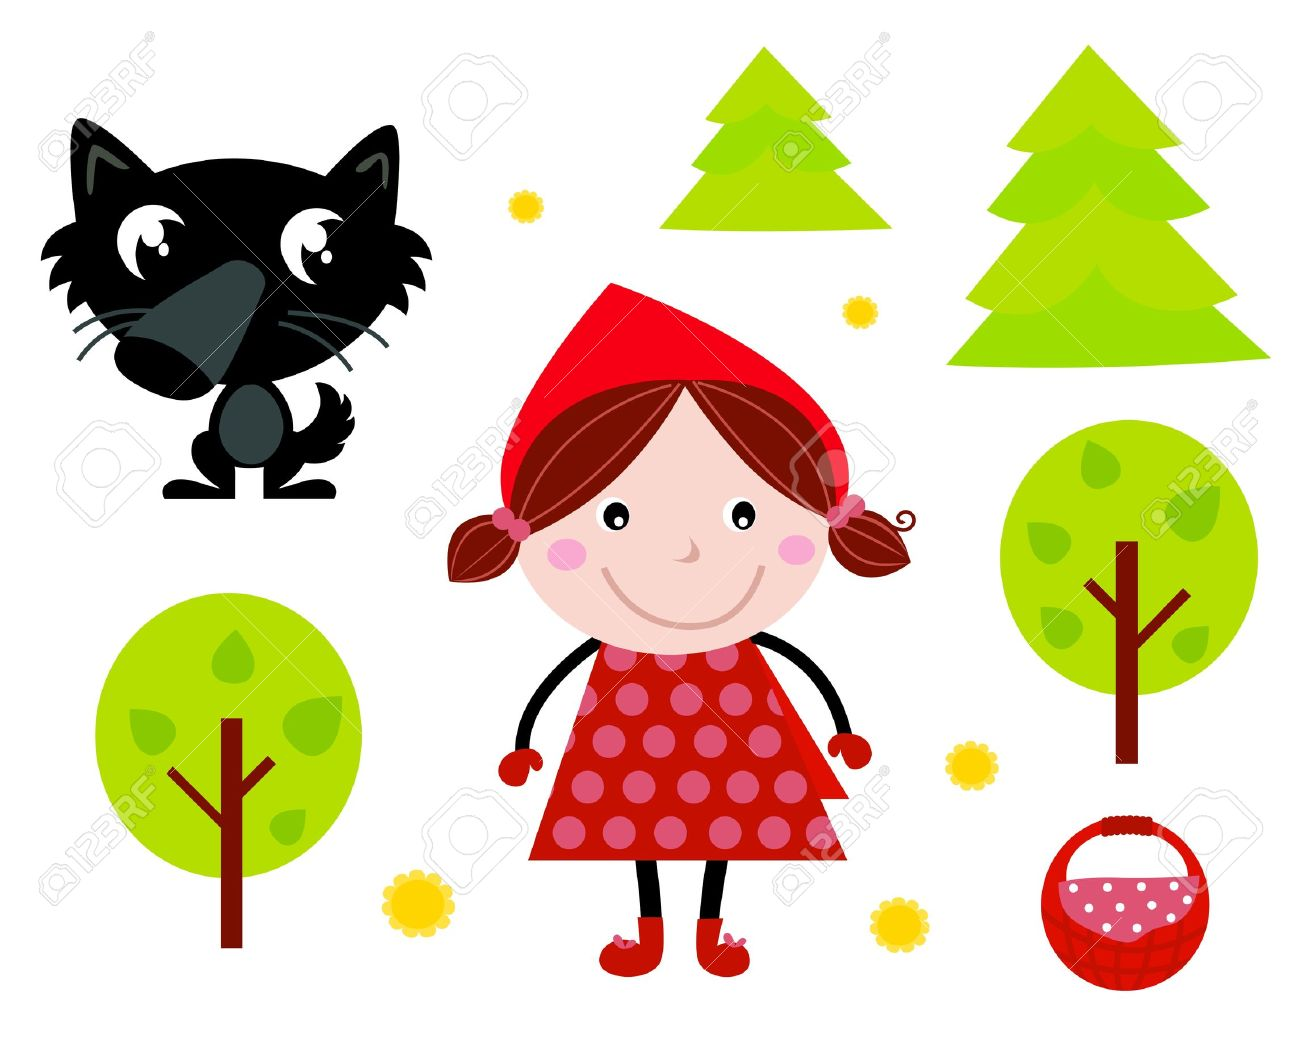 fairy tale icons collection isolated on white red riding hood rh 123rf com little red riding hood clipart black and white little red riding hood grandma clipart